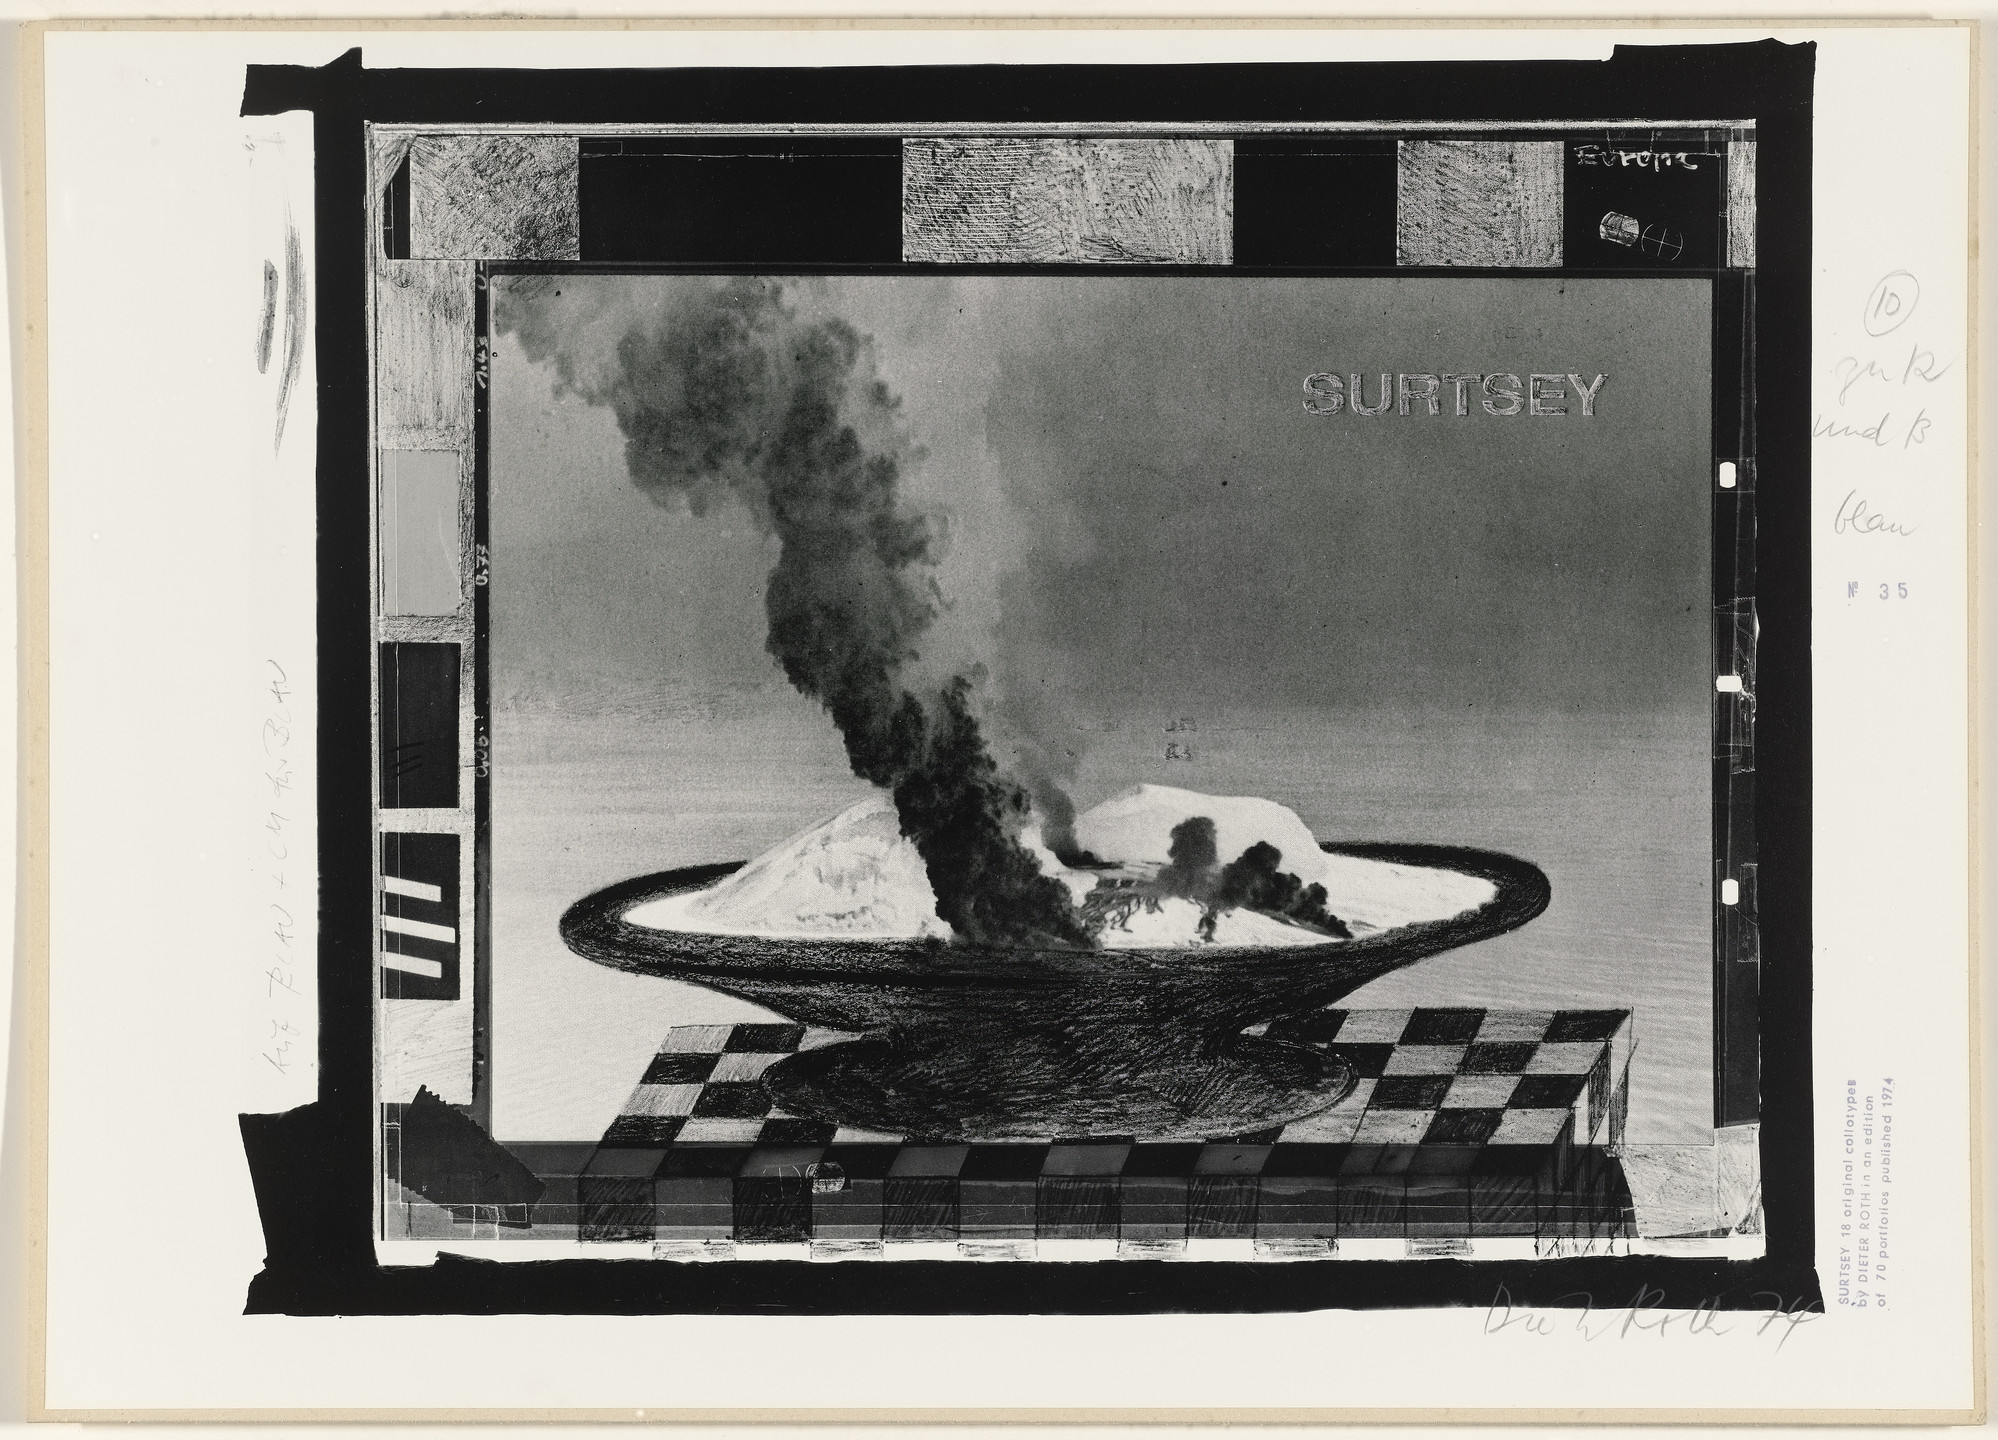 Dieter Roth. Untitled from Surtsey. 1973–74, published 1974